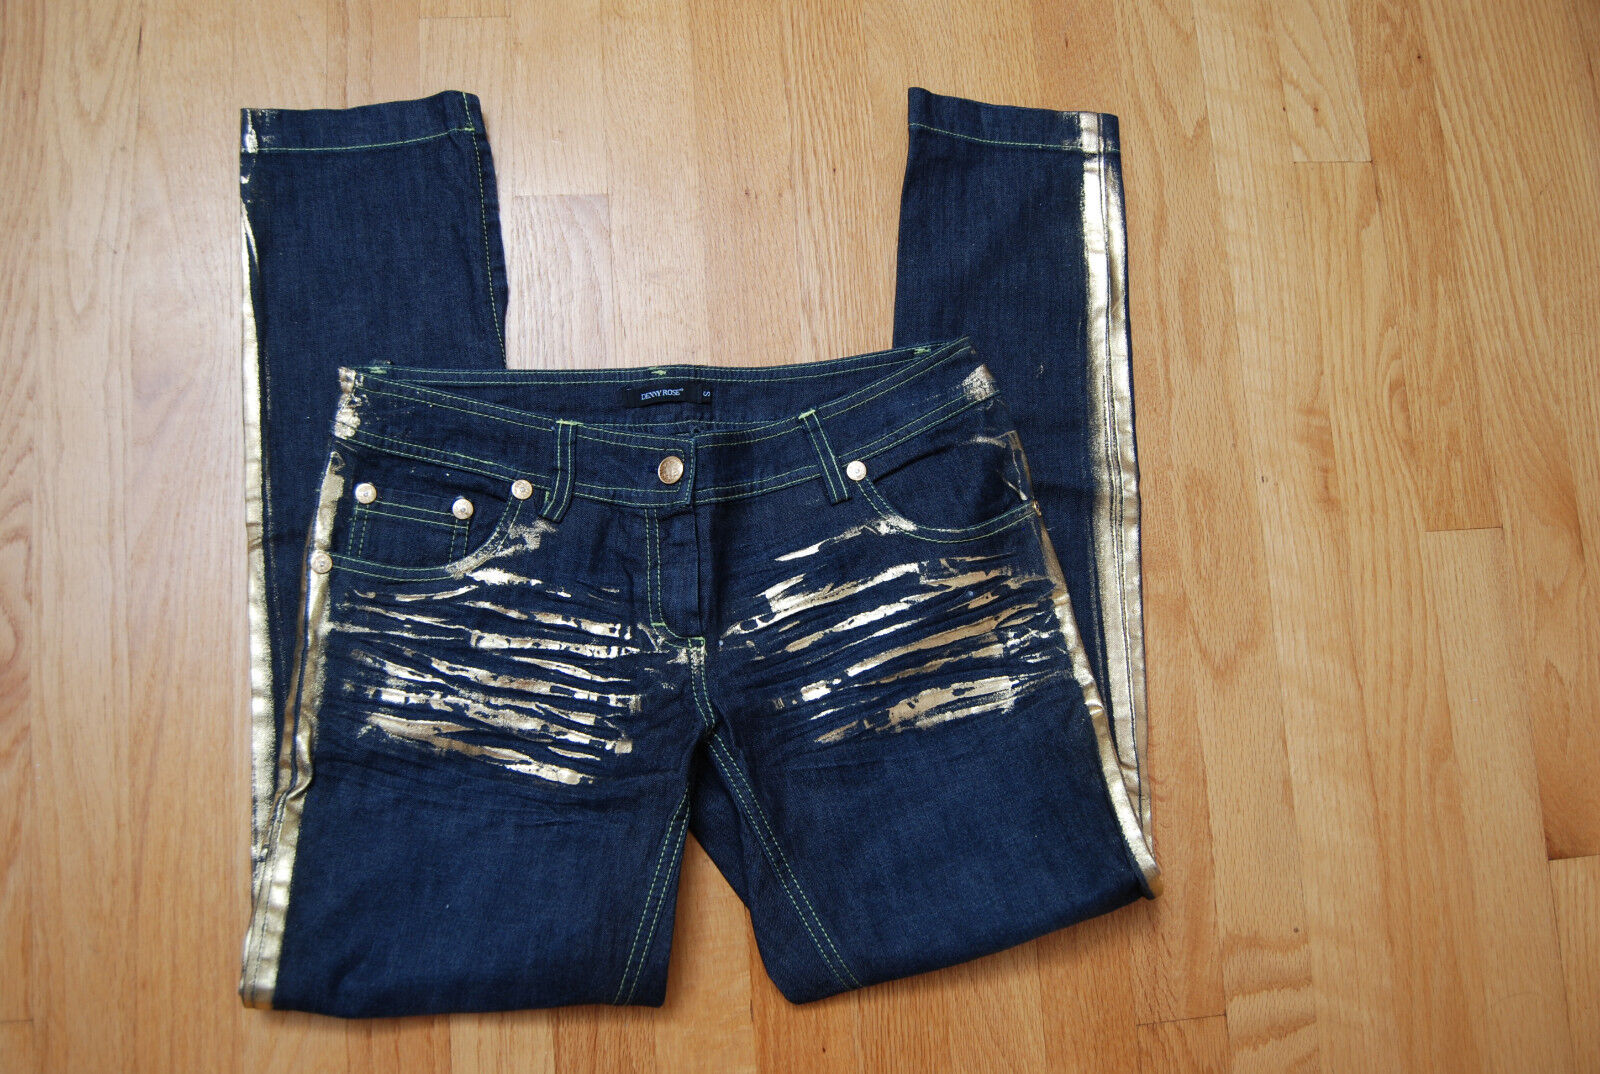 New Dark bluee W gold Painted Accents DENNY pink Jeans W  Zippered Legs Small